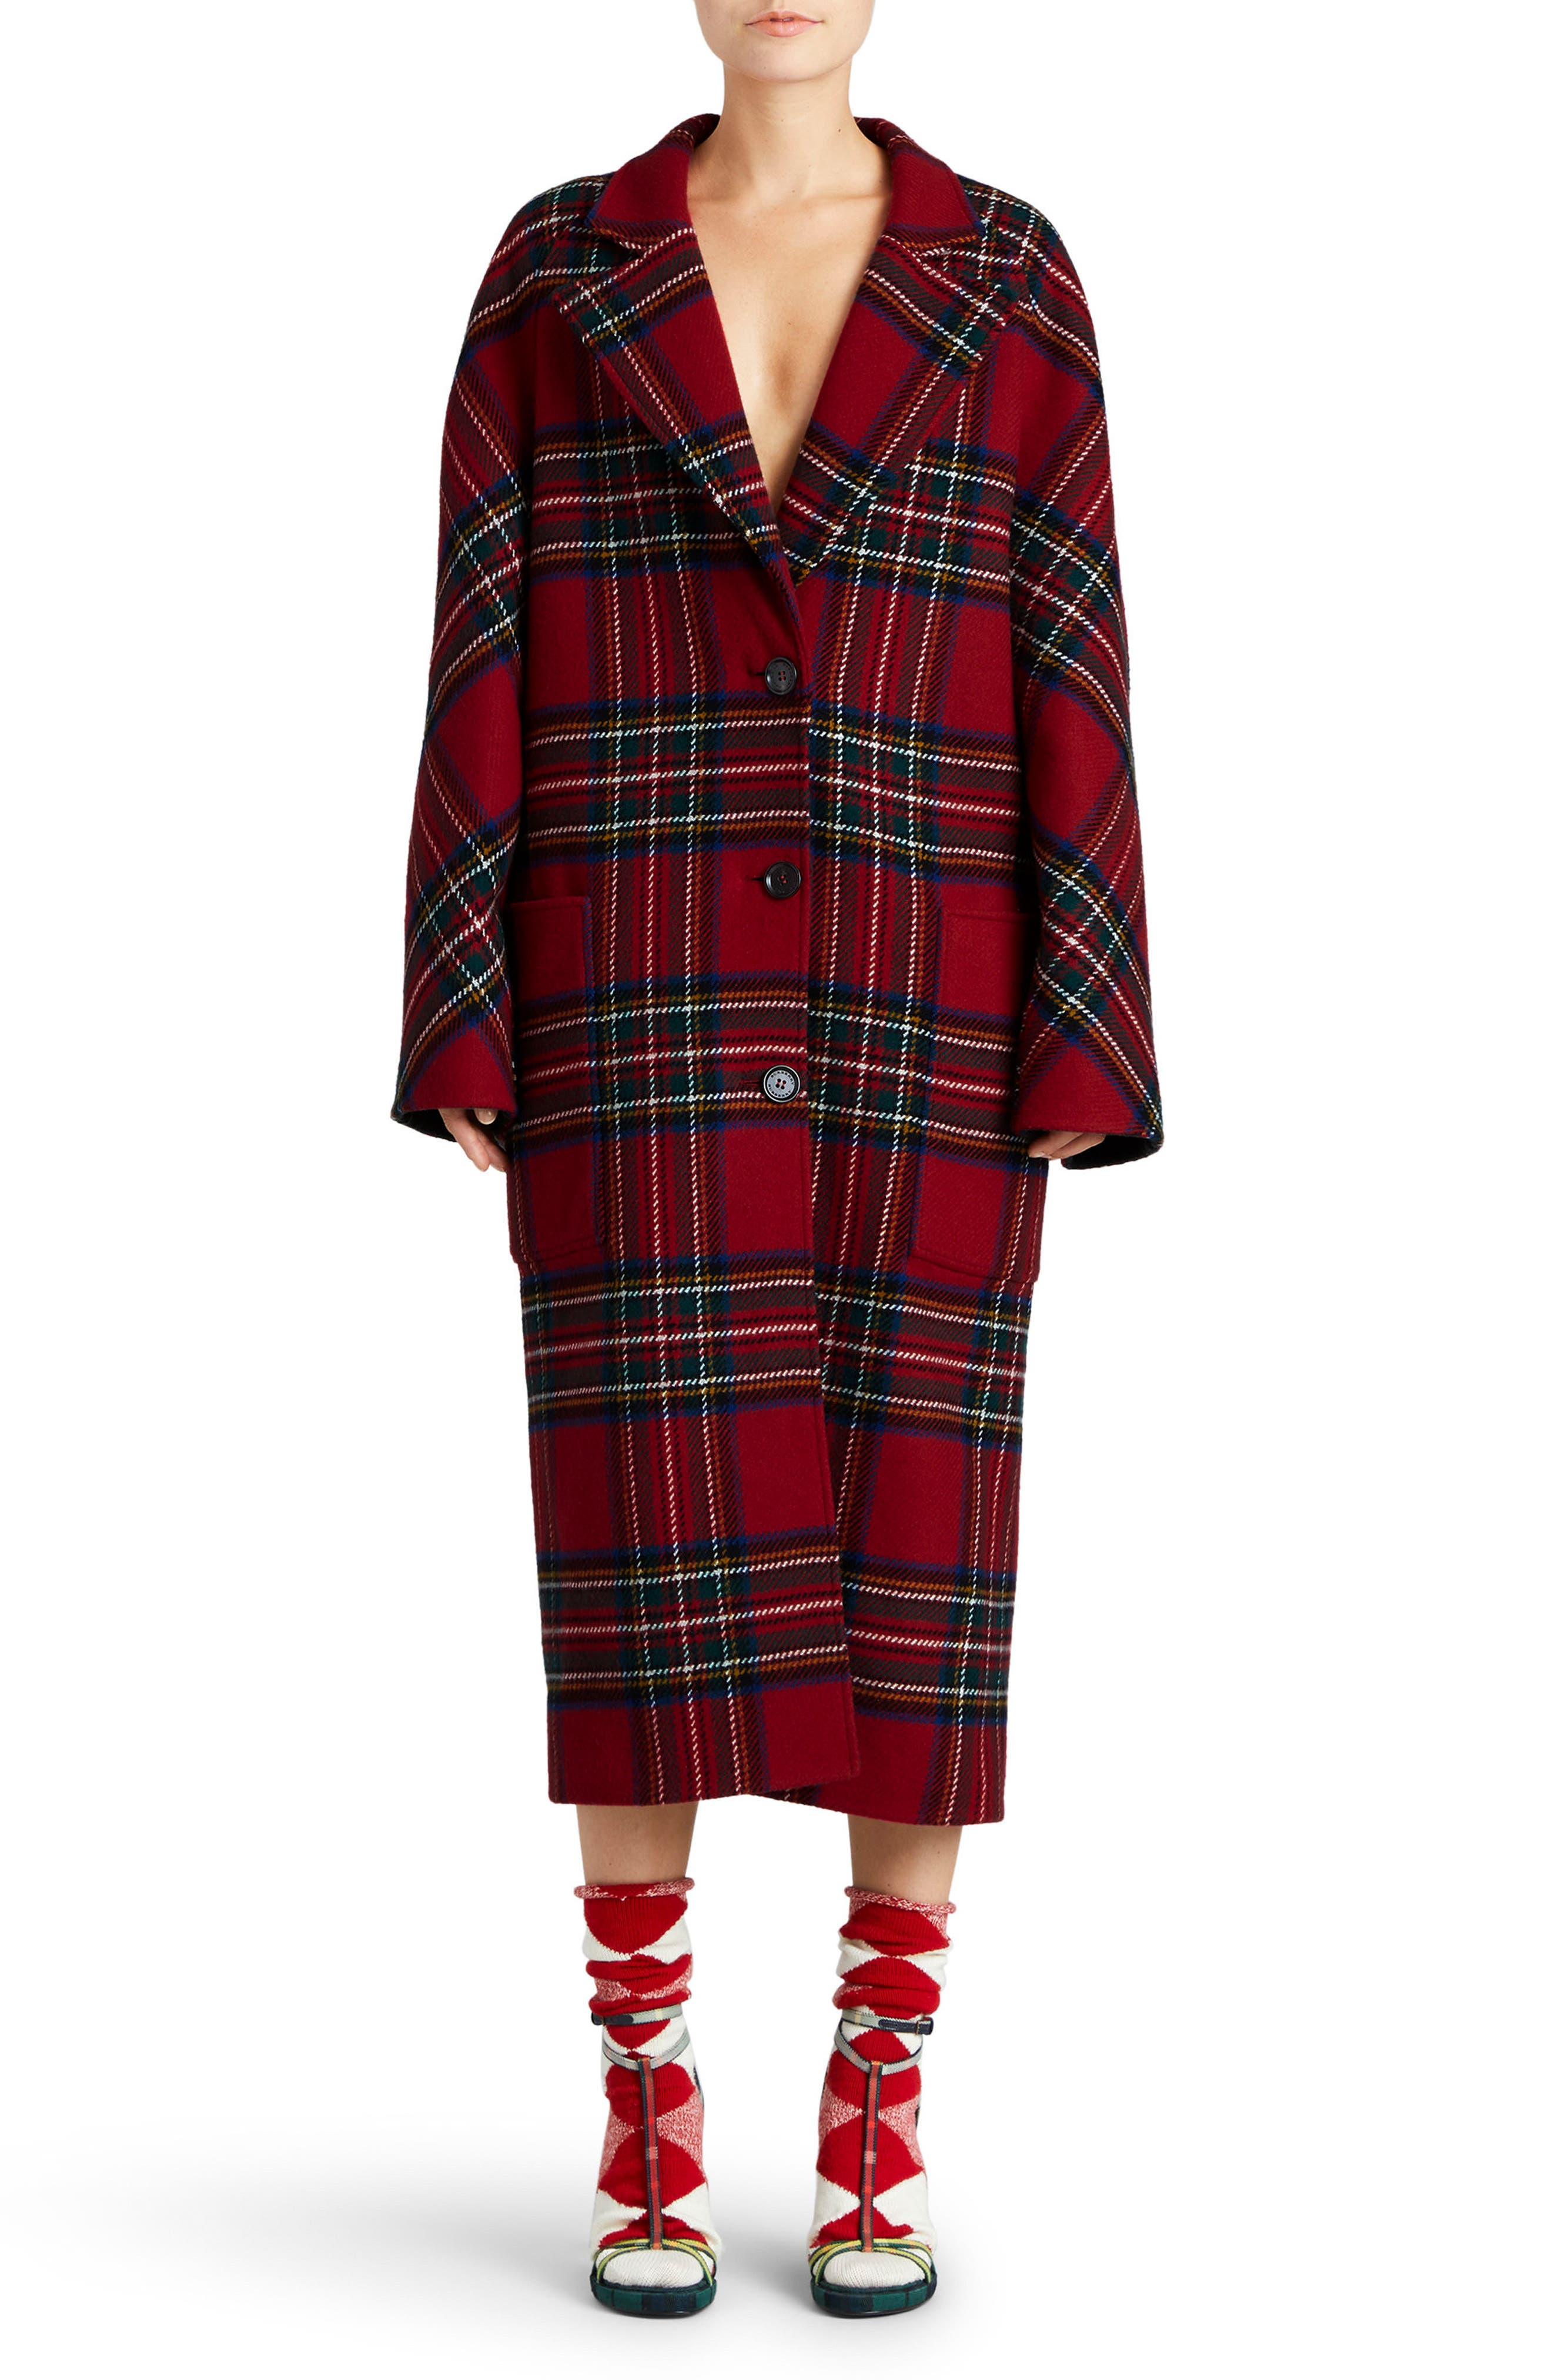 Main Image - Burberry Scottish Tartan Wool & Cashmere Reversible Coat